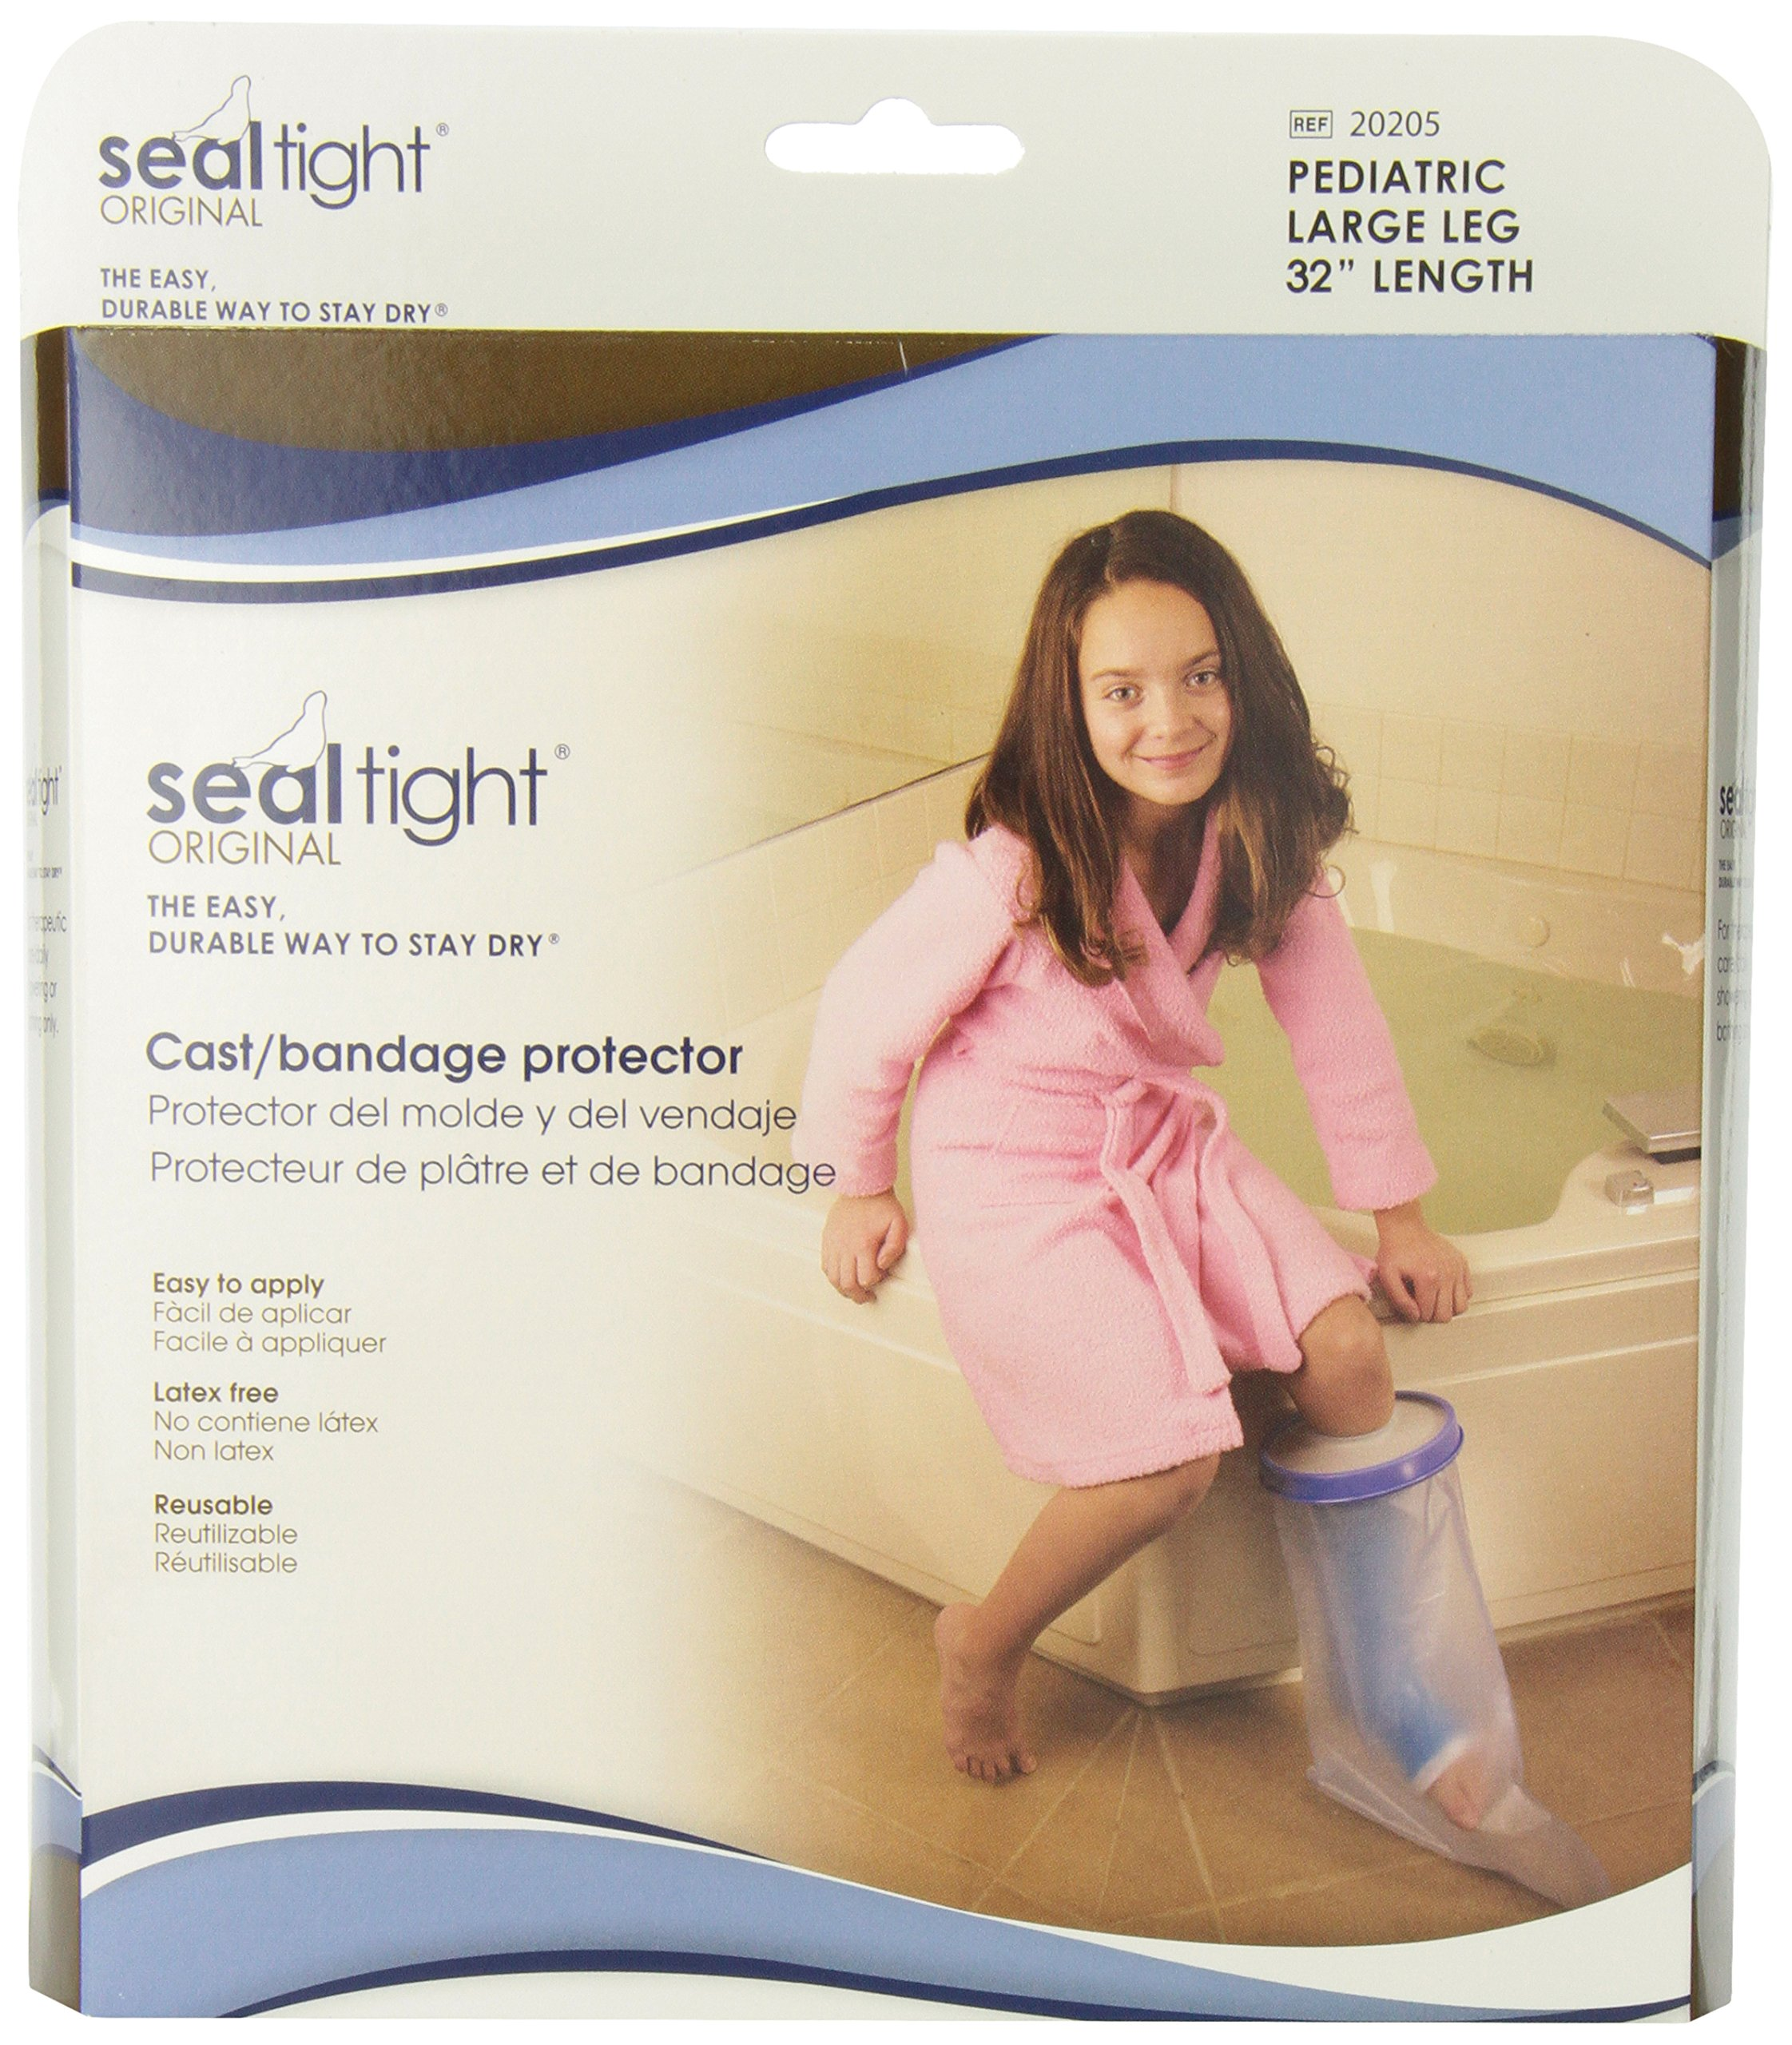 Seal Tight ORIGINAL Cast and Bandage Protector, Best Watertight Protection, Pediatric Large Leg by Brownmed